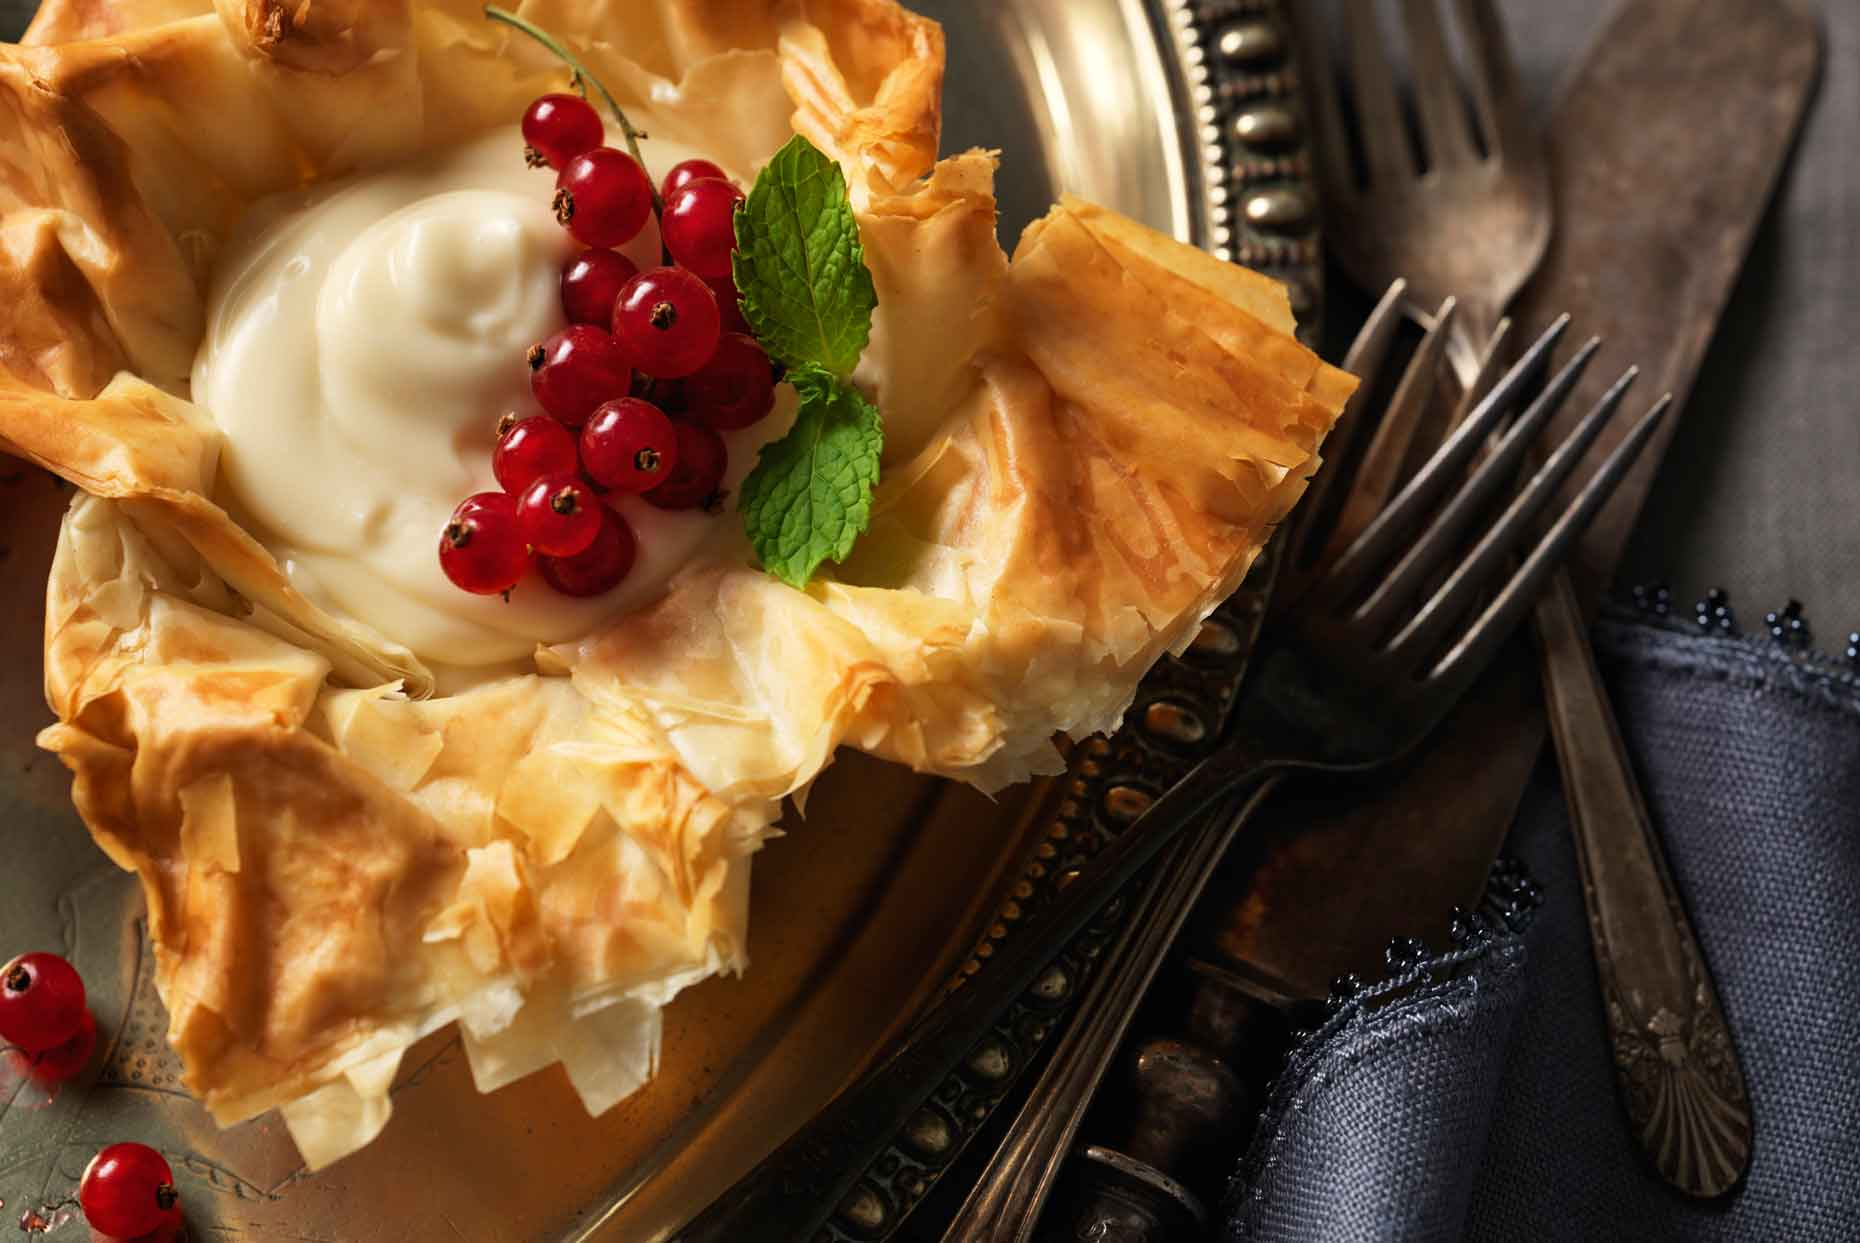 Custard in phyllo pastry